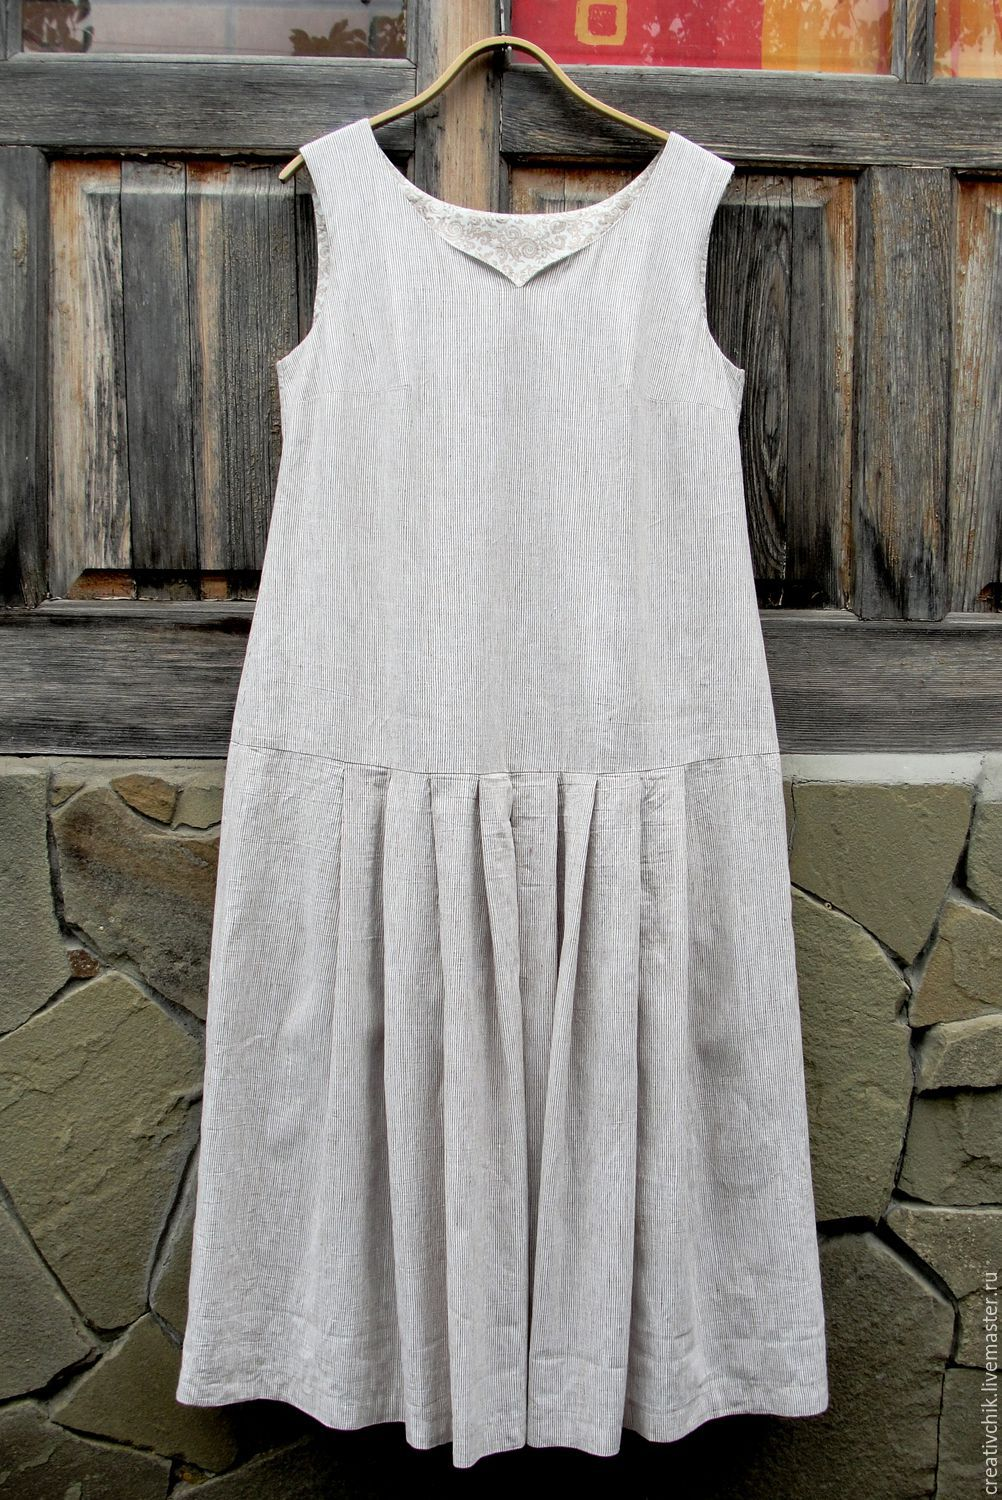 Linen summer dress for Elena, Dresses, Volgograd,  Фото №1